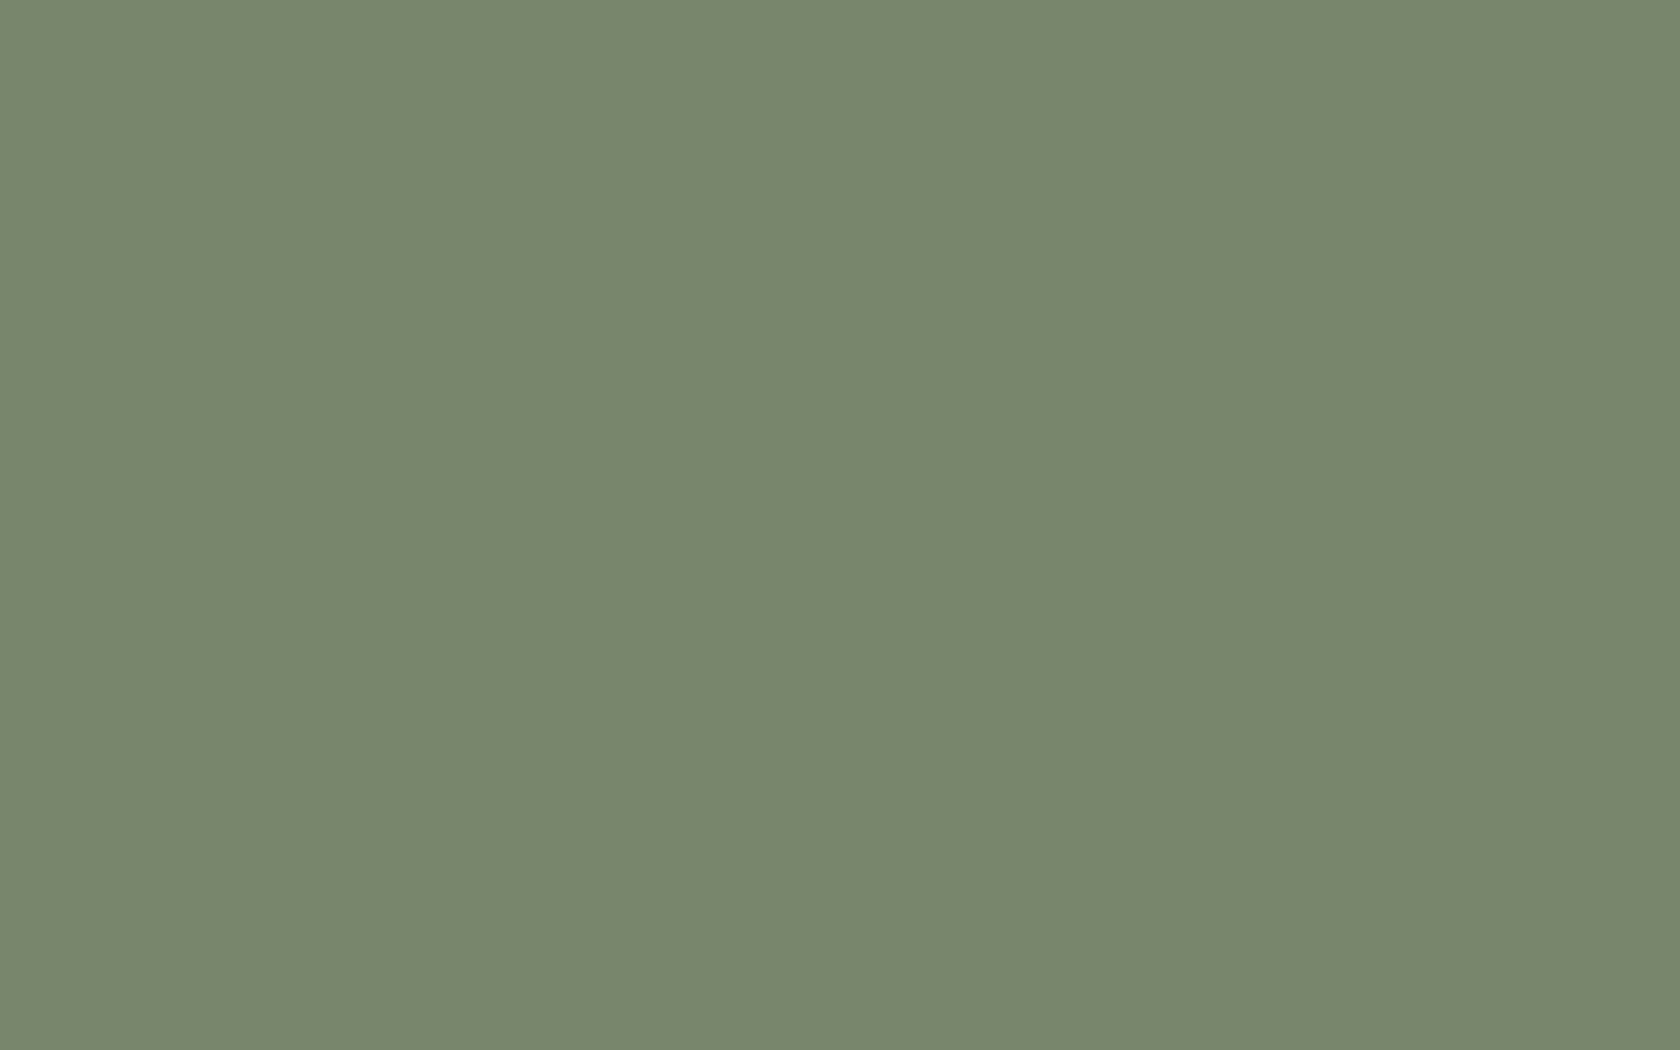 1680x1050 Camouflage Green Solid Color Background